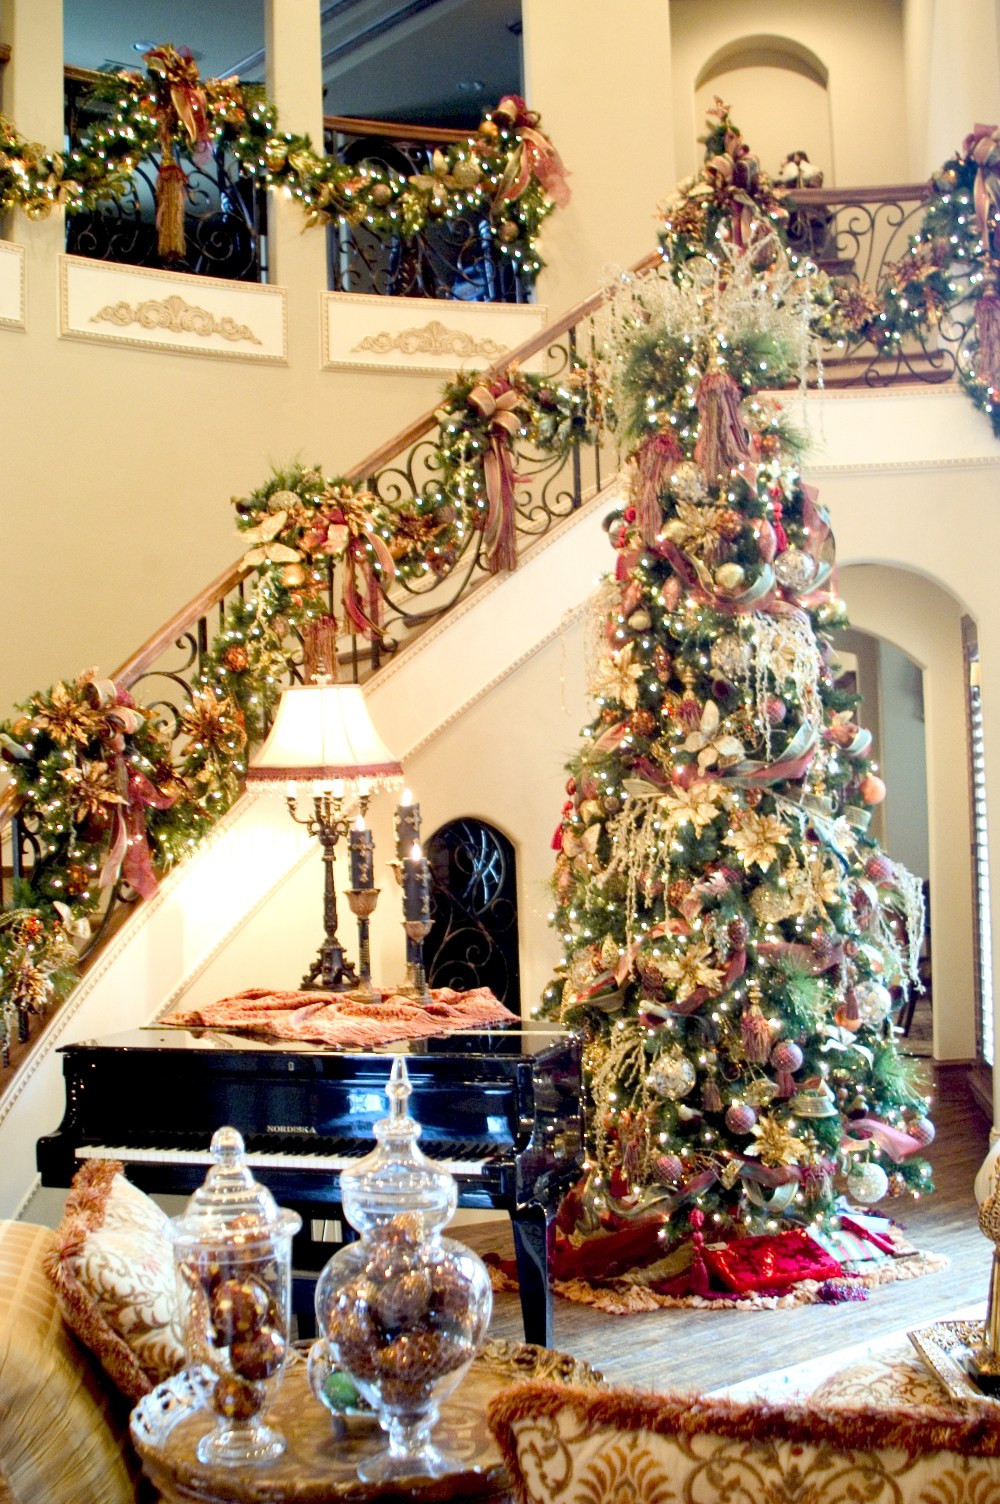 Christmas Decoration Ideas Best Of Christmas Decorations for Home Interior Of Amazing 45 Photos Christmas Decoration Ideas